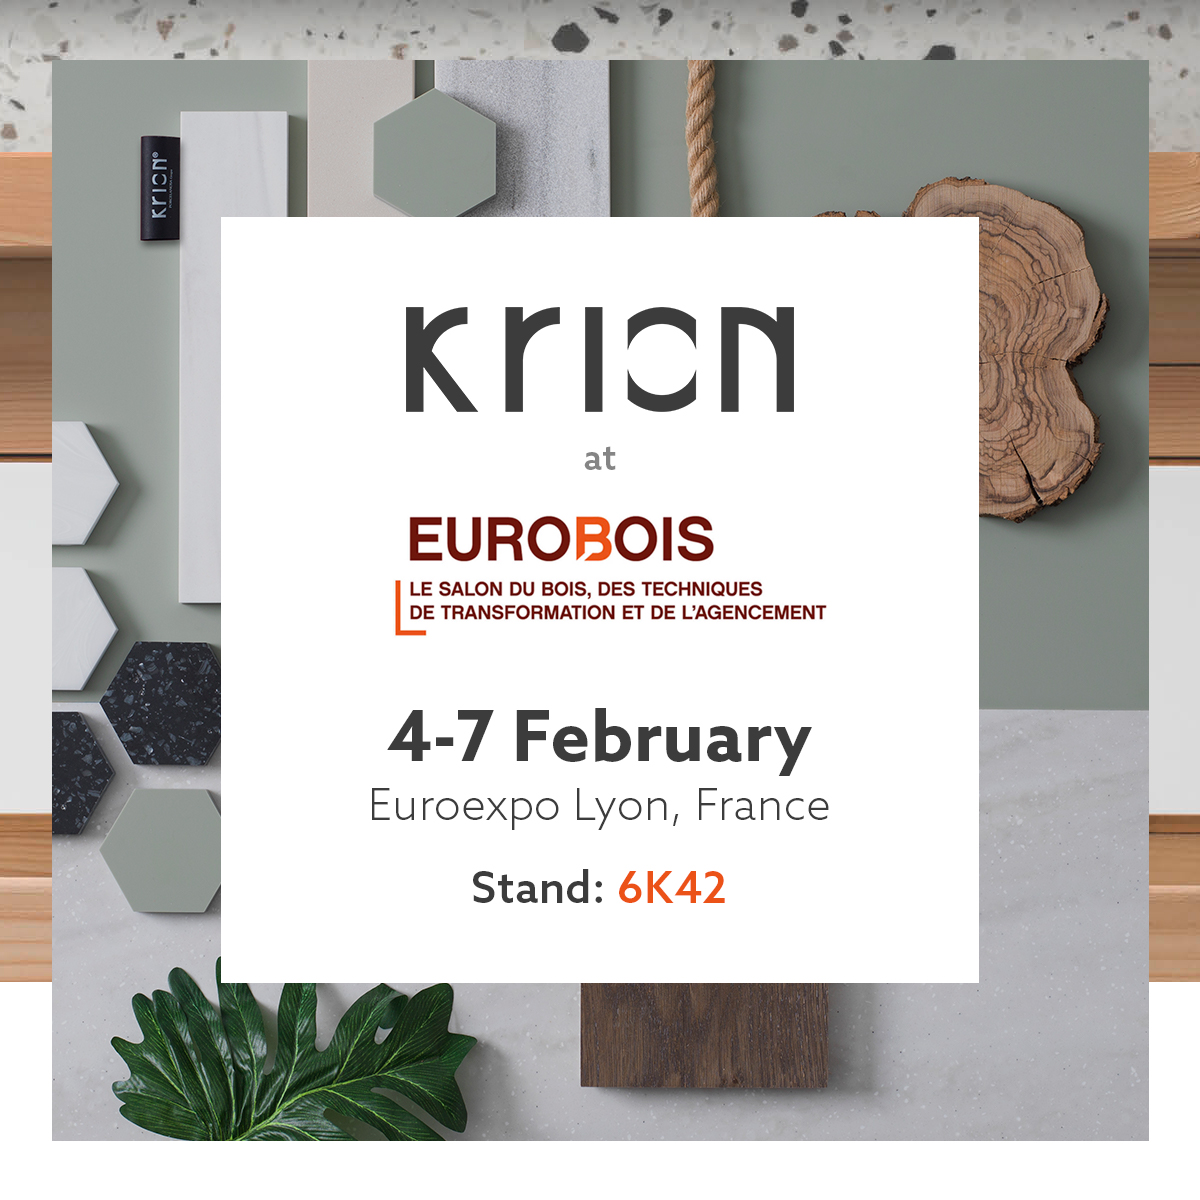 Krion will present its affinity programme and offer free training at Eurobois 2020